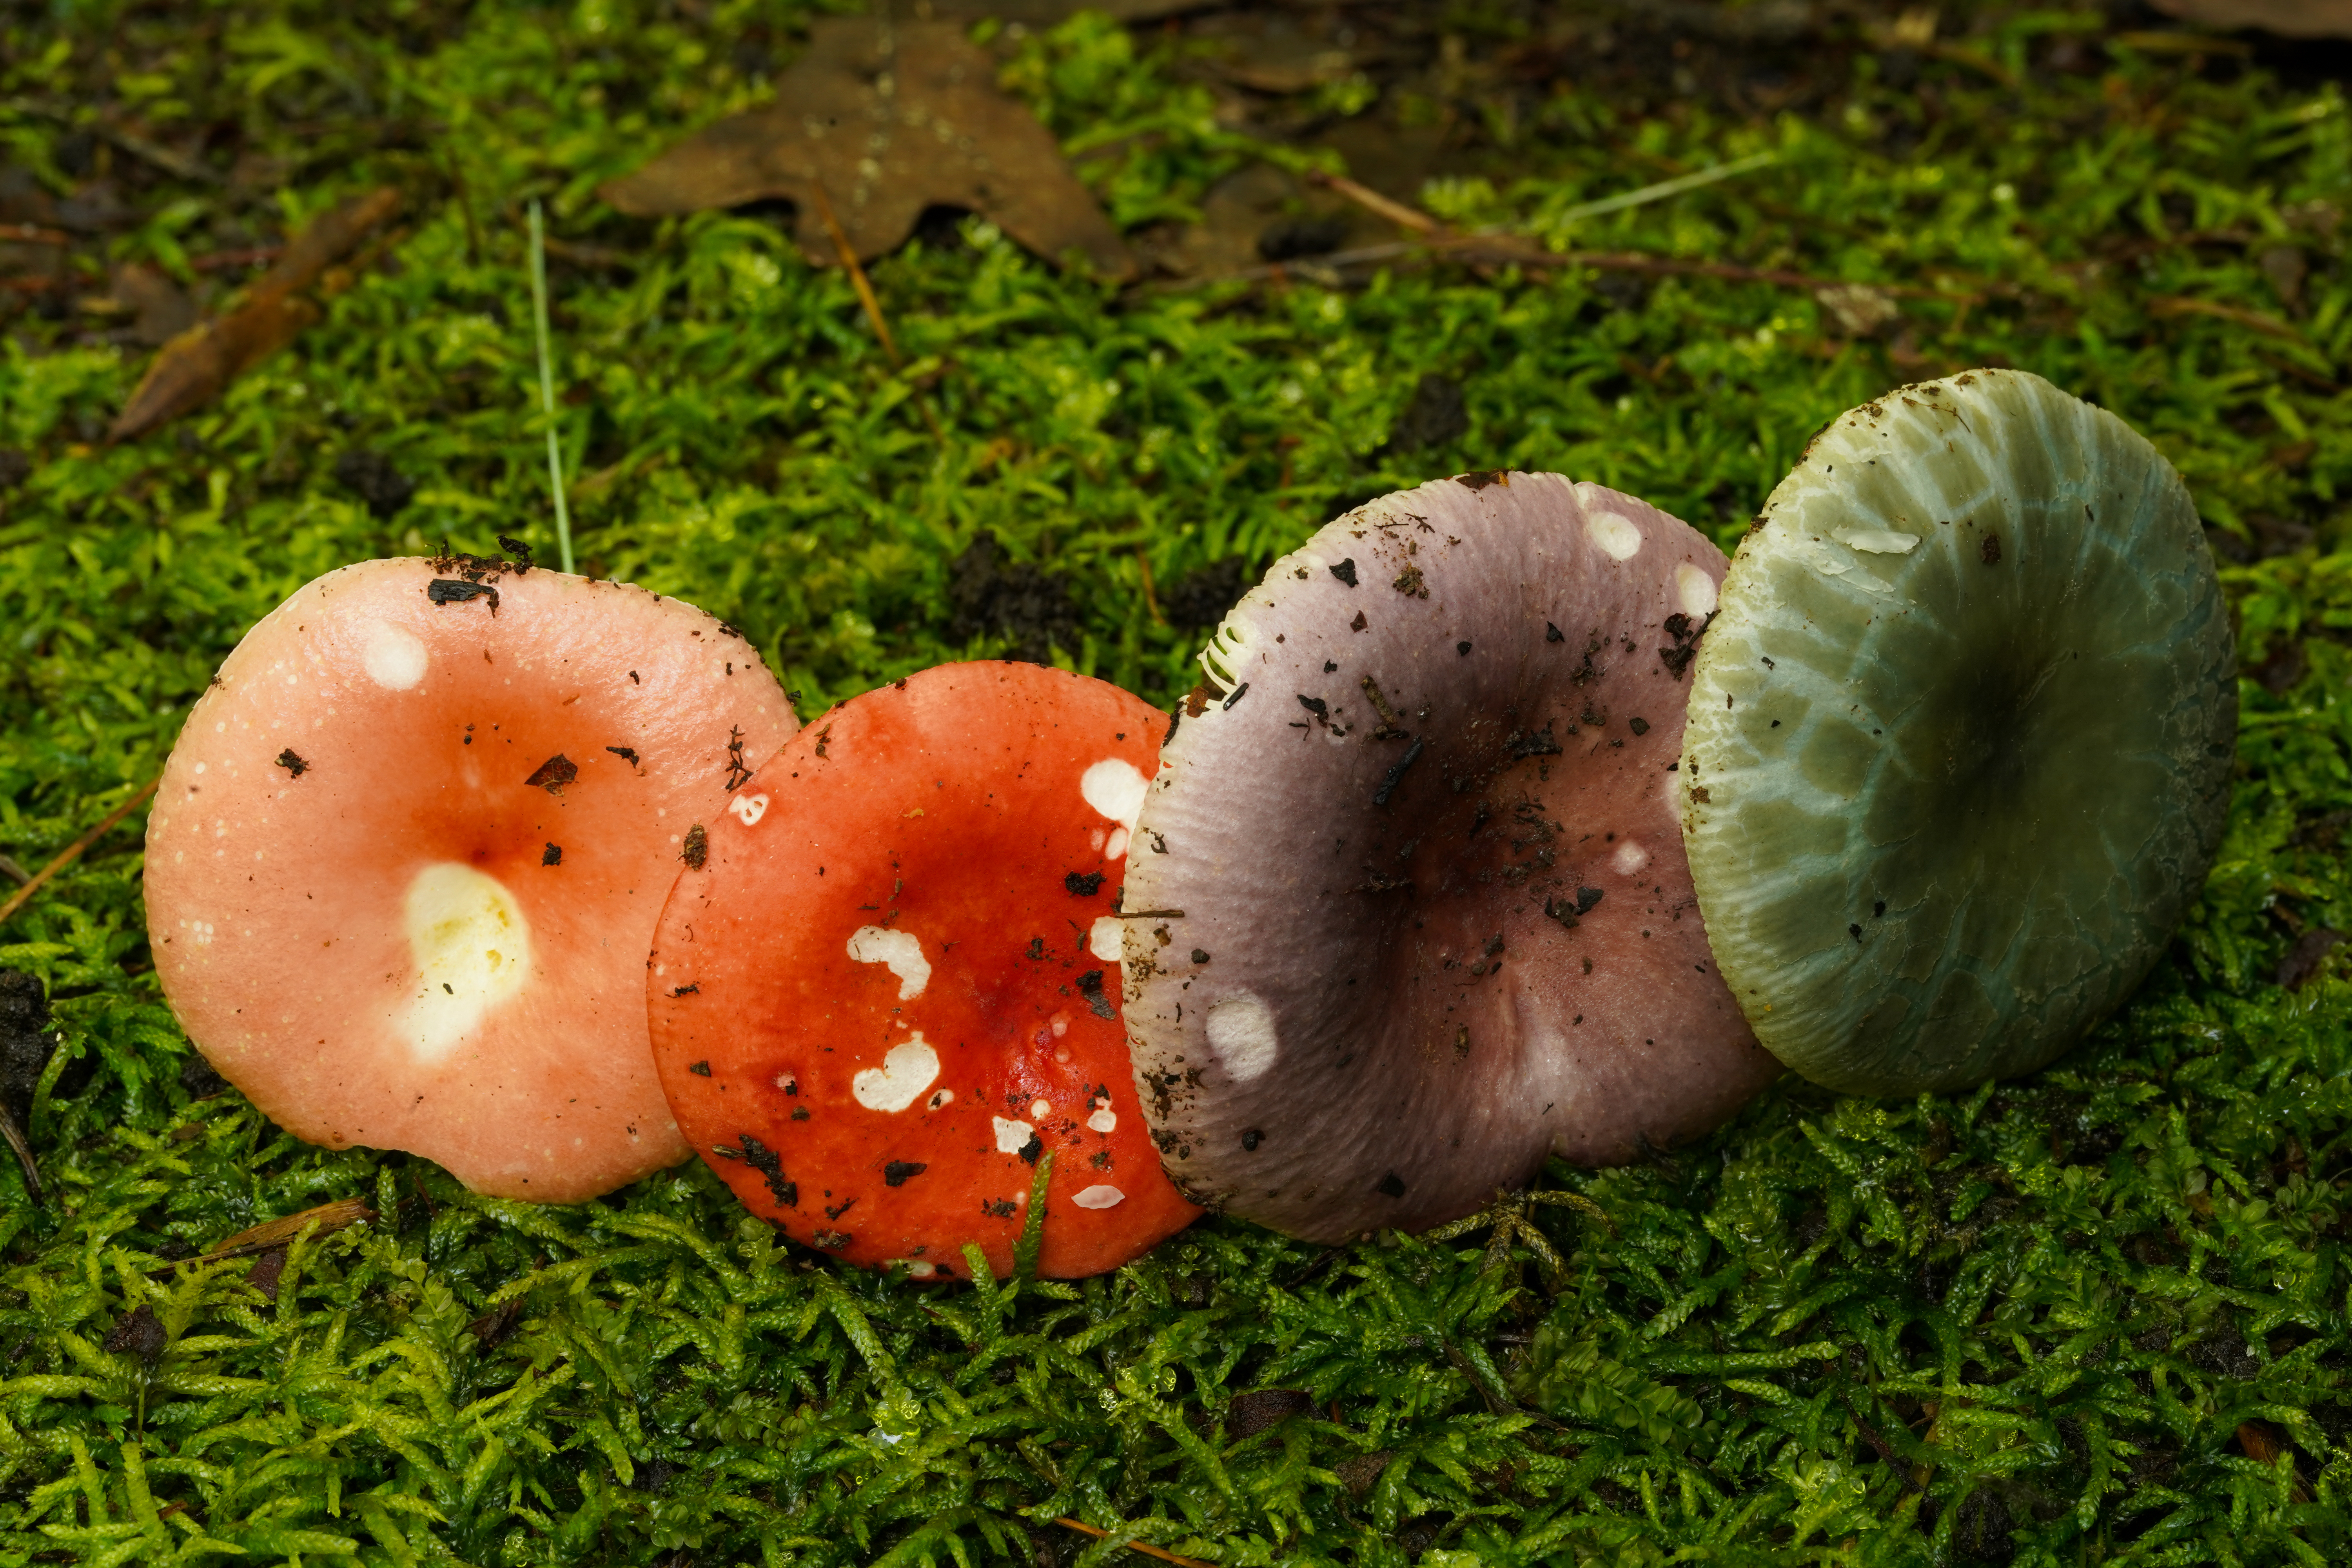 Russula mushrooms appear in a wide variety of colors, sometimes making proper identification difficult. Photo courtesy of Chance Noffsinger